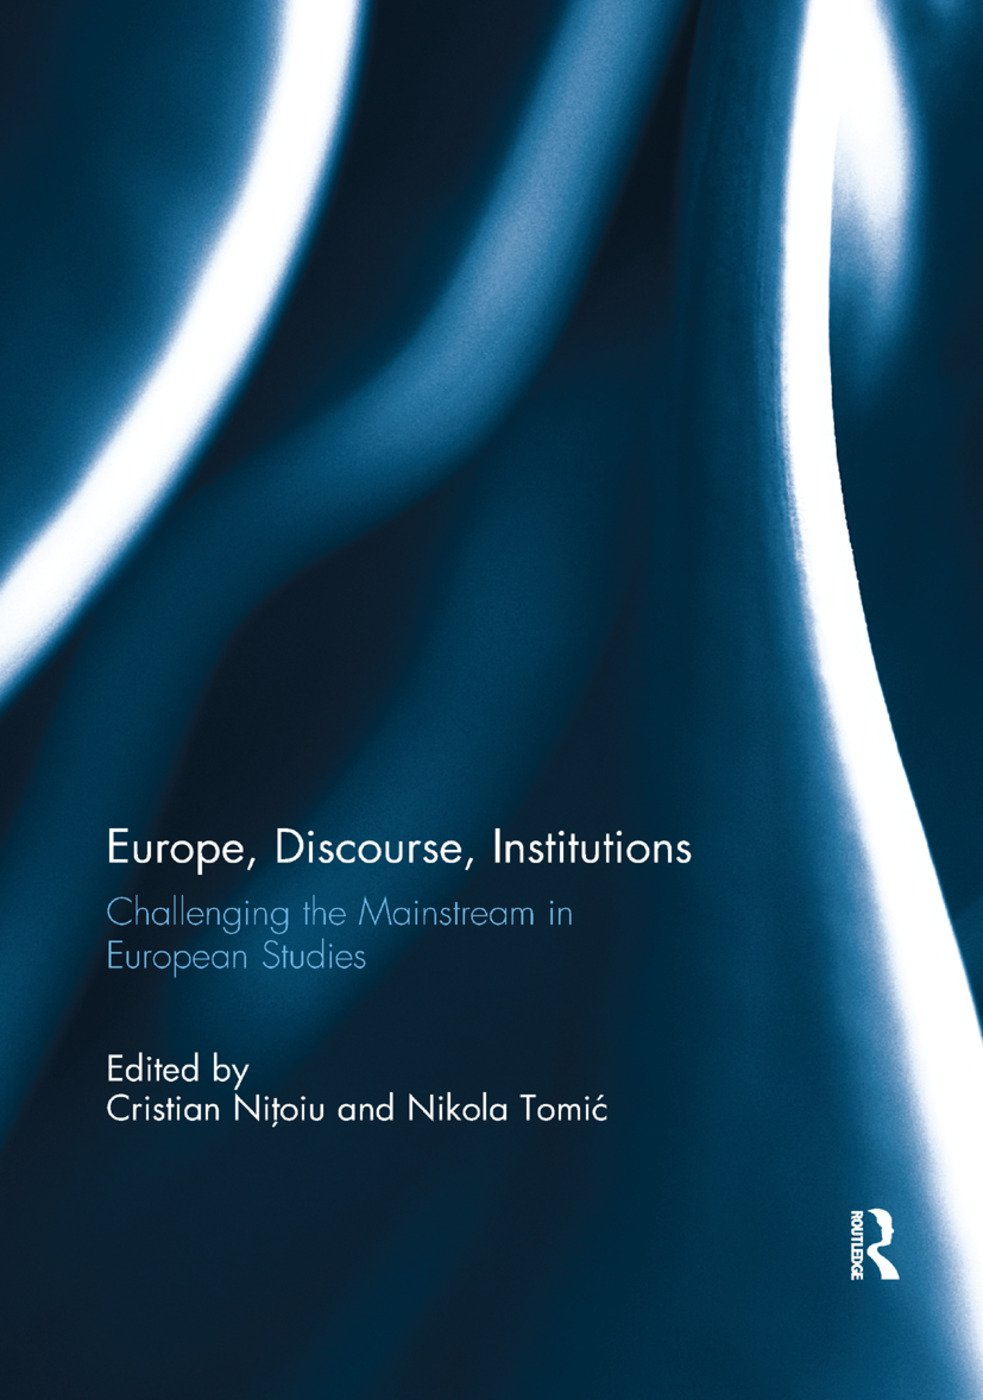 Europe, Discourse, and Institutions